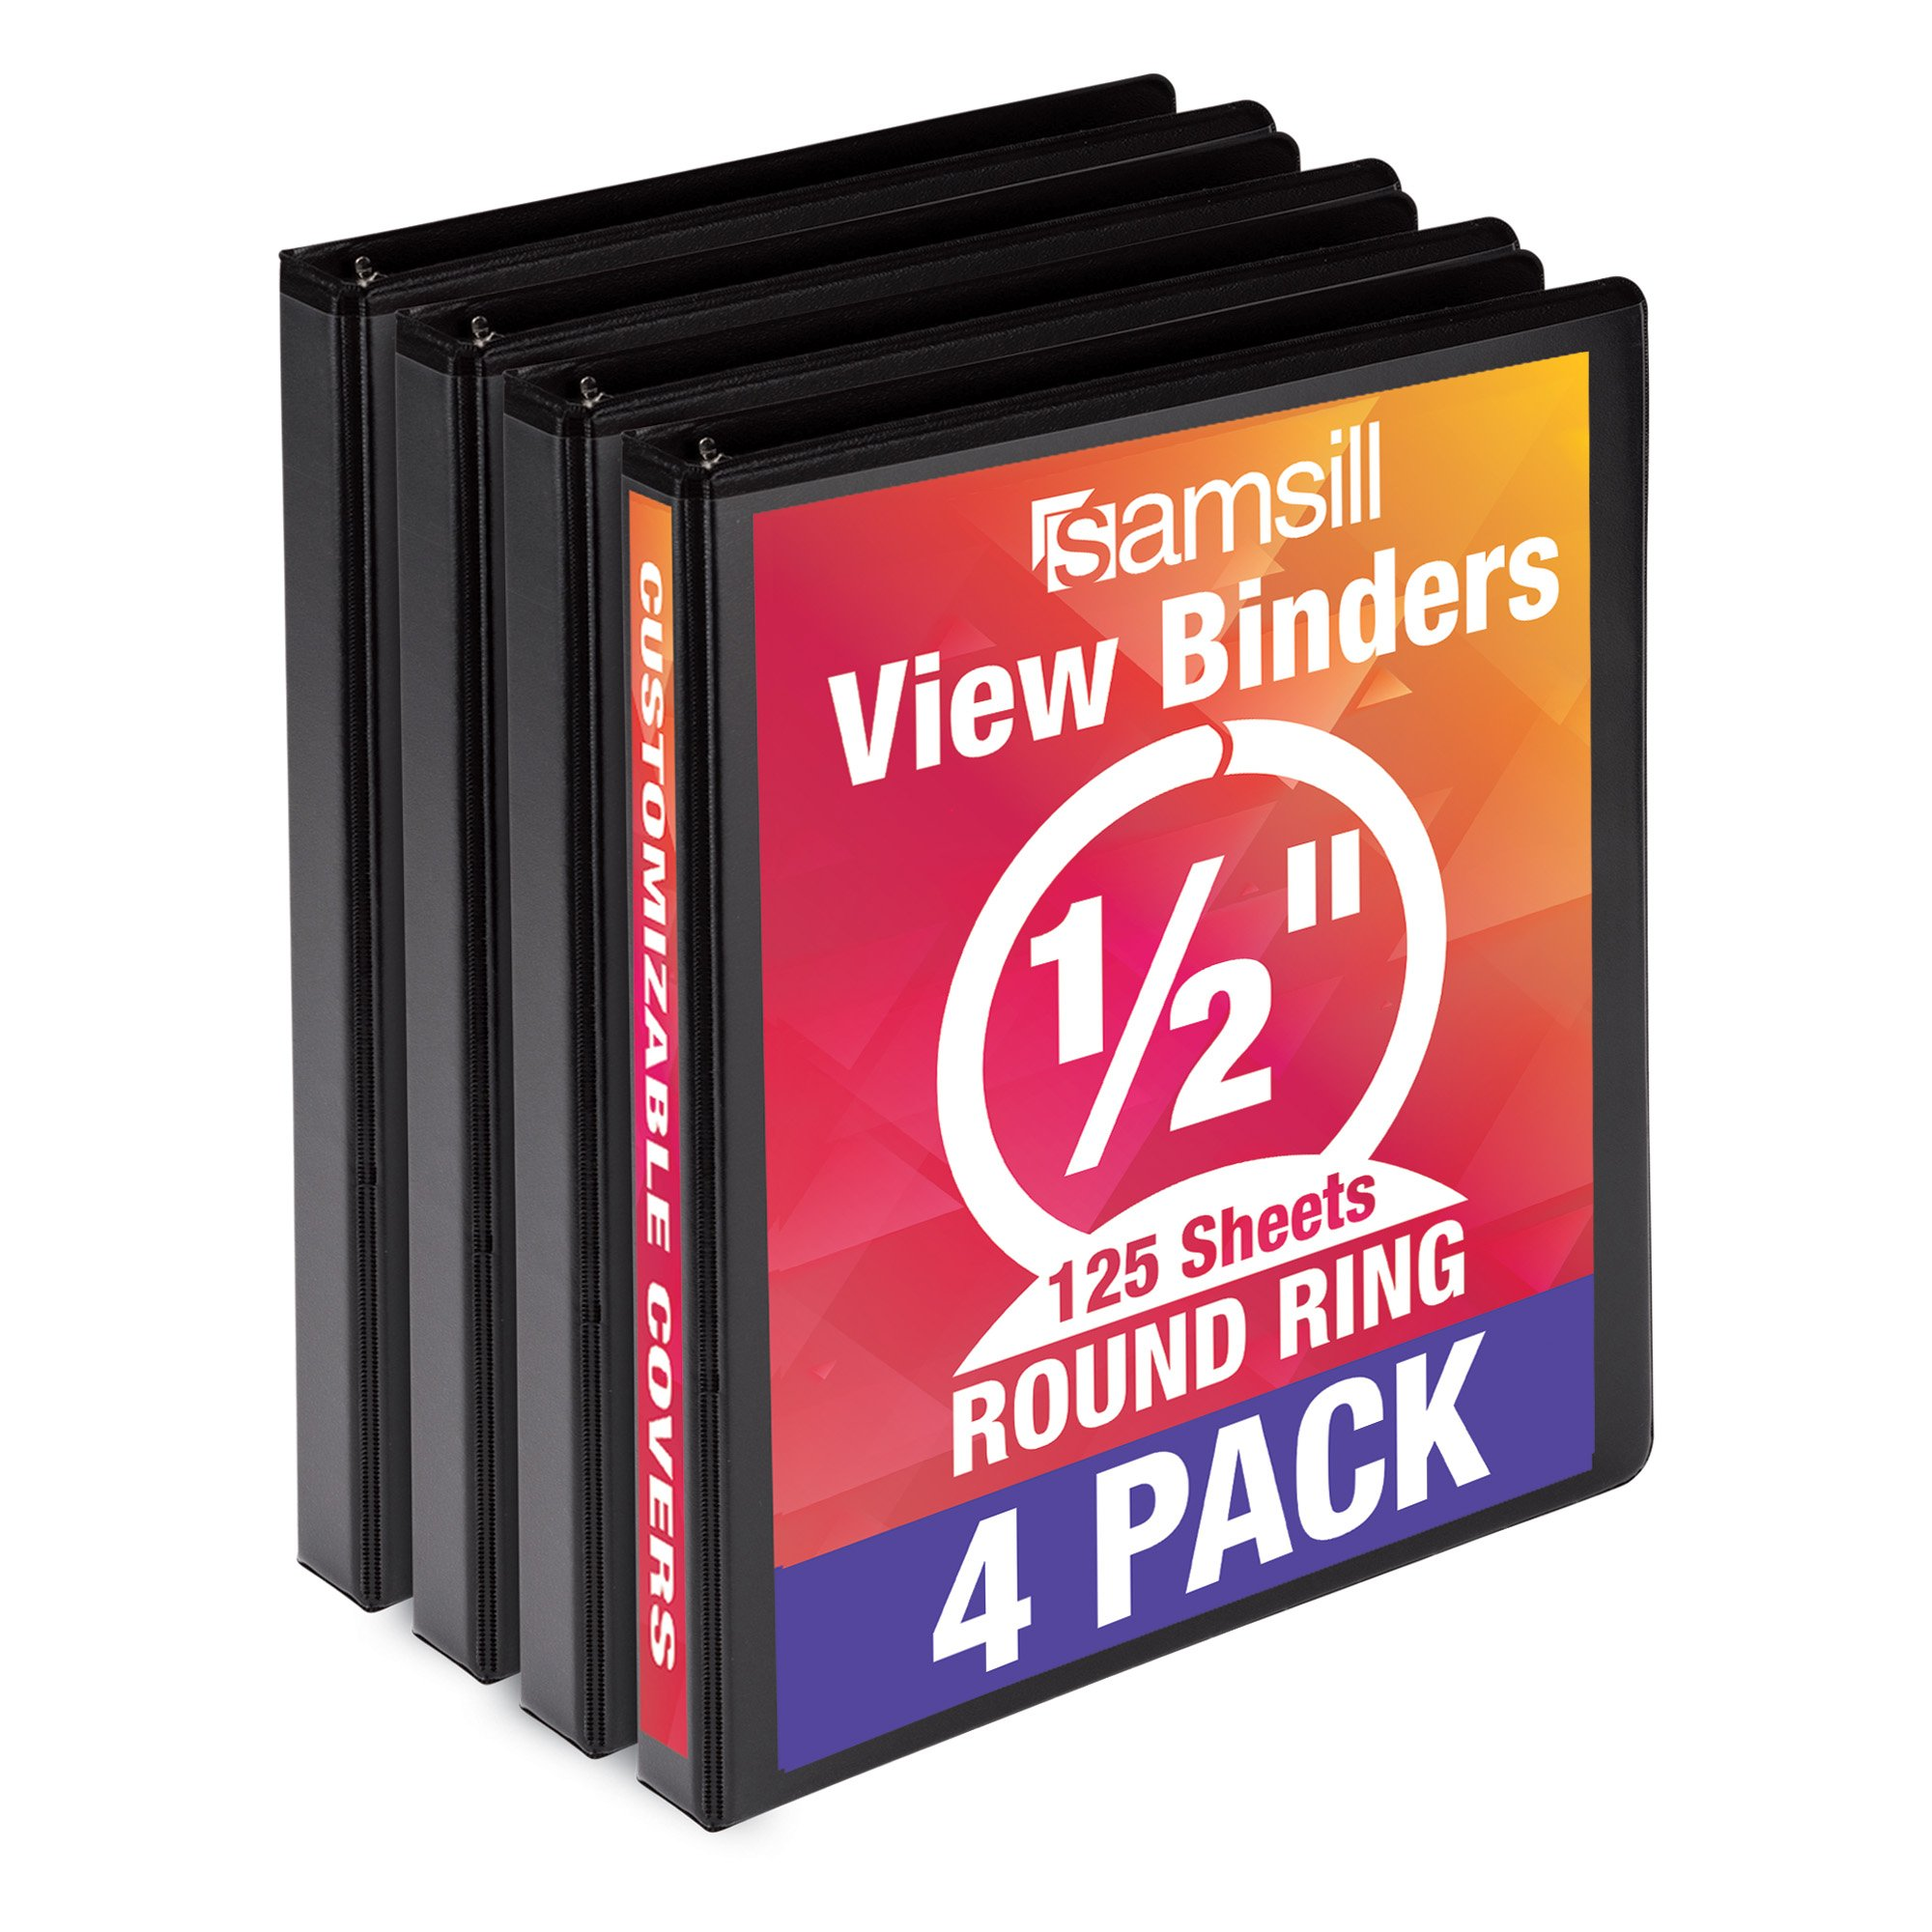 Samsill Economy 3 Ring View Binder.5 inch Round Ring – Holds 125 Sheets, PVC-Free/Non-Stick Customizable Cover, Black, 4 Pack